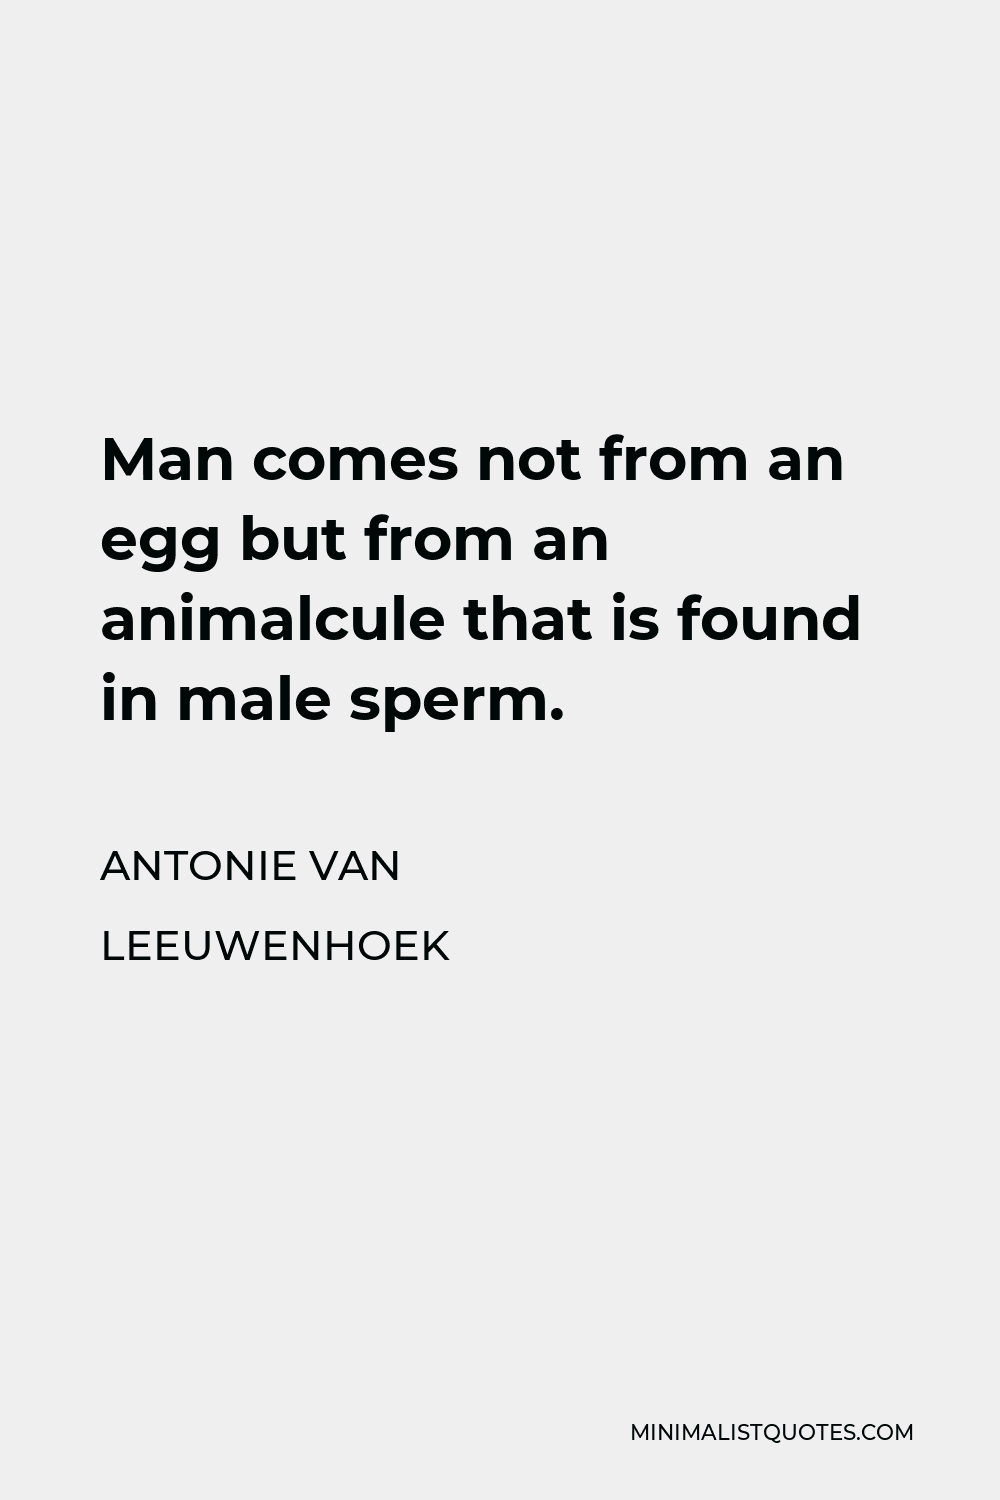 Antonie van Leeuwenhoek Quote - Man comes not from an egg but from an animalcule that is found in male sperm.